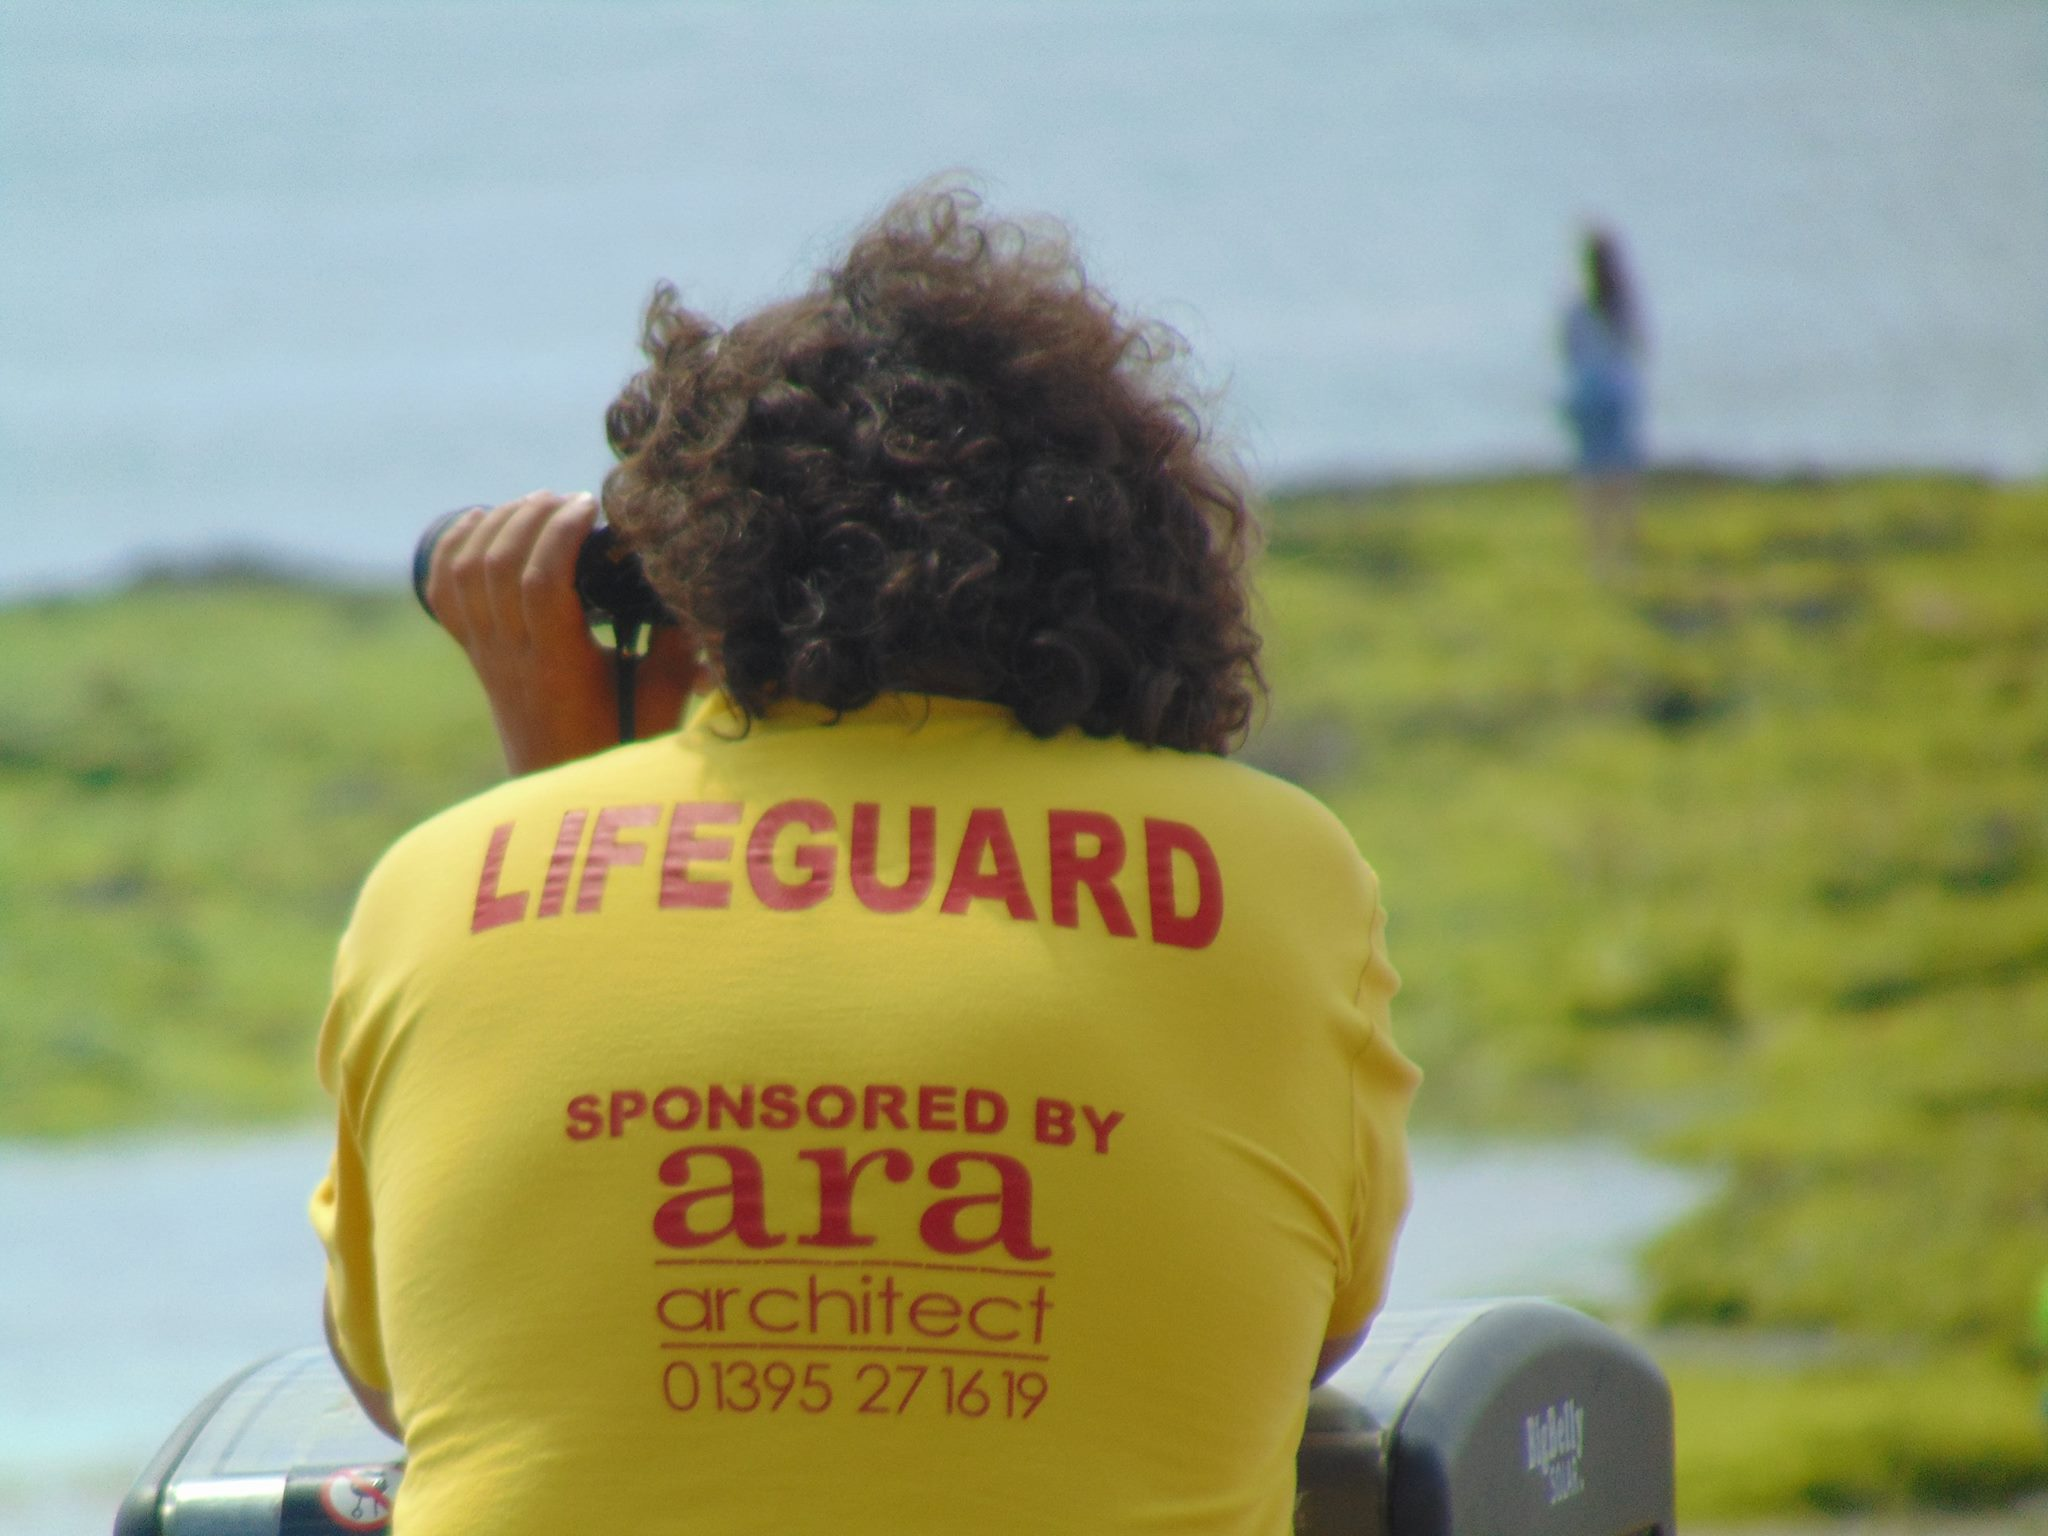 Lifeguard keeping watch.